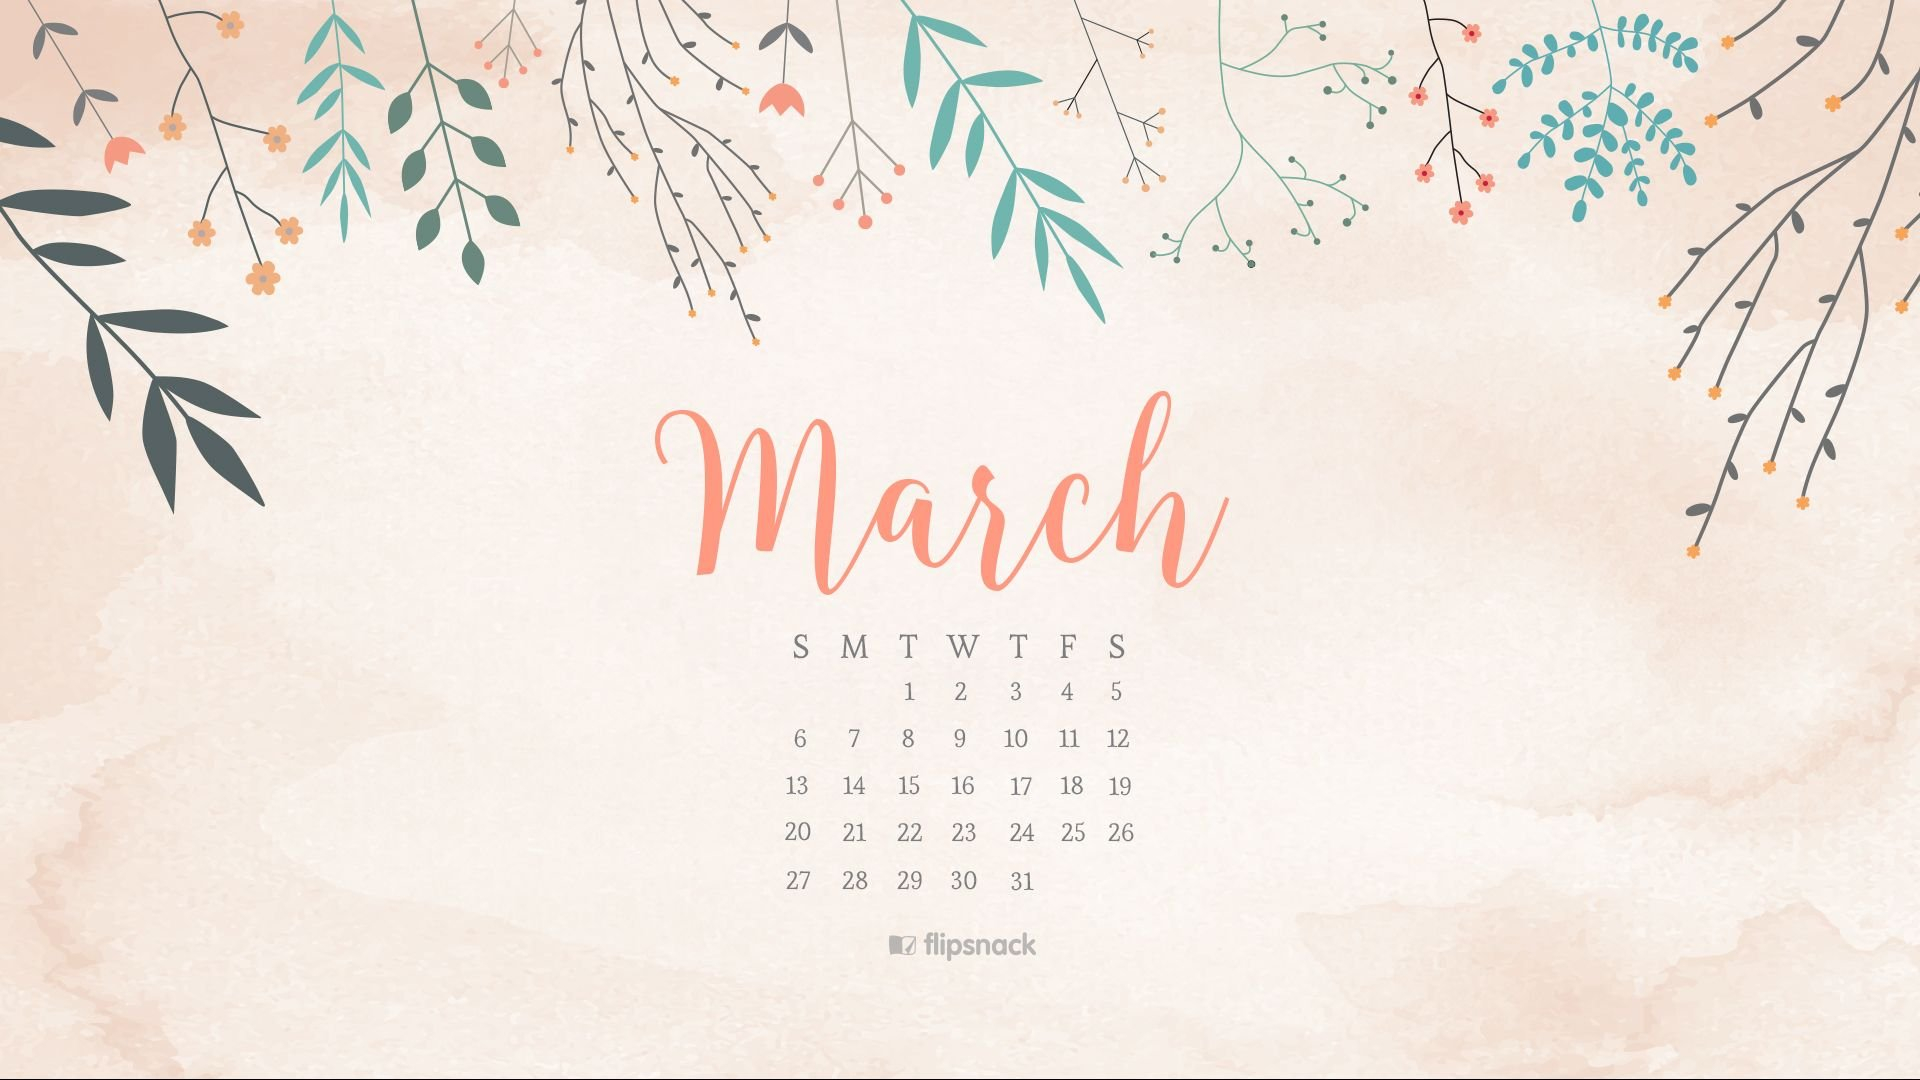 March 2016 Free Calendar Wallpaper – Desktop Background Download Crosscards Monthly Calendar For Computer Background